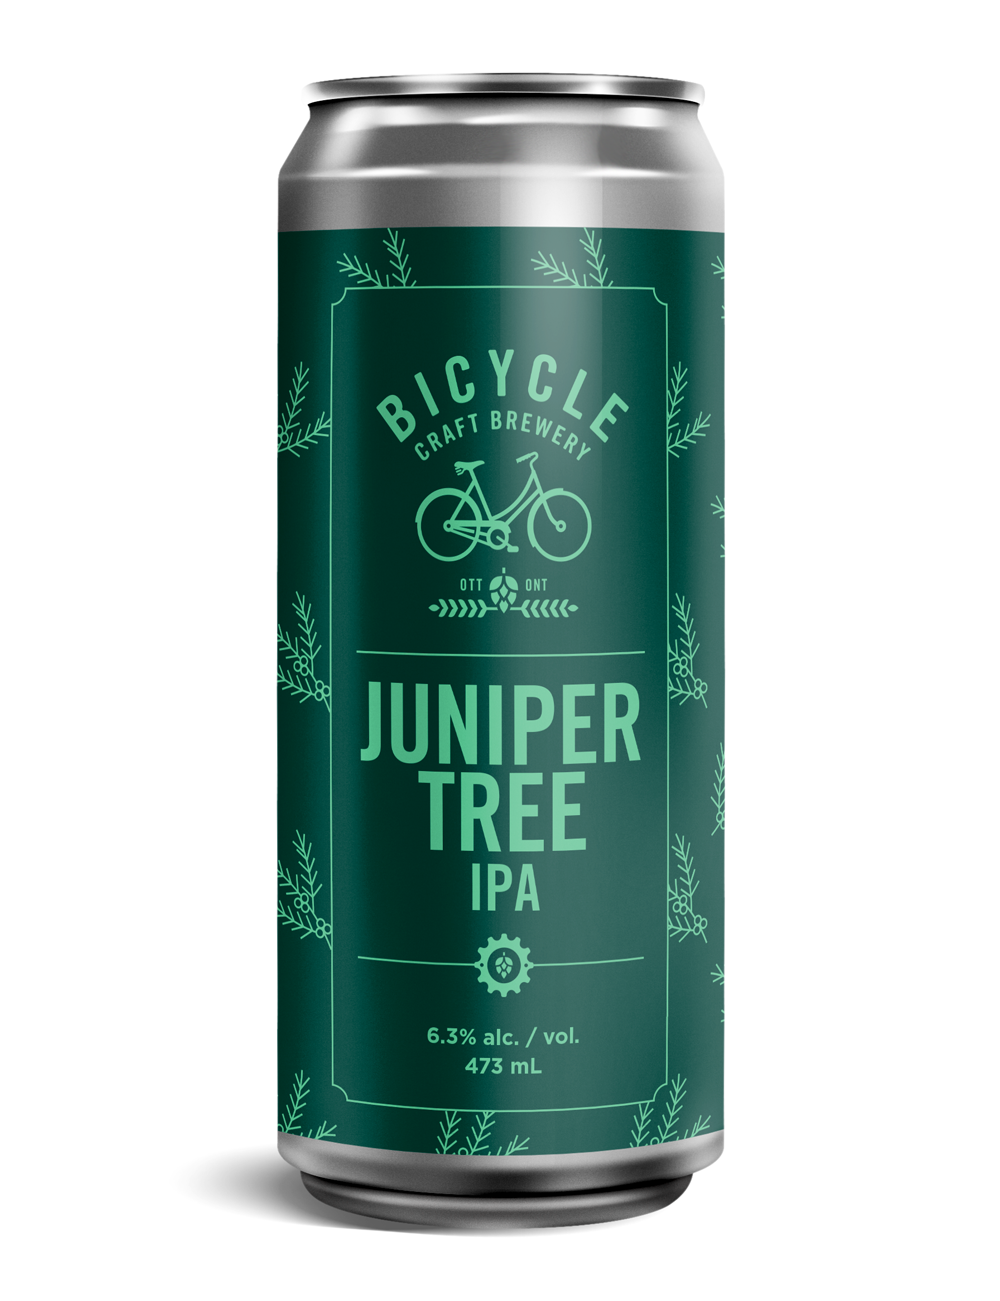 Juniper Tree IPA